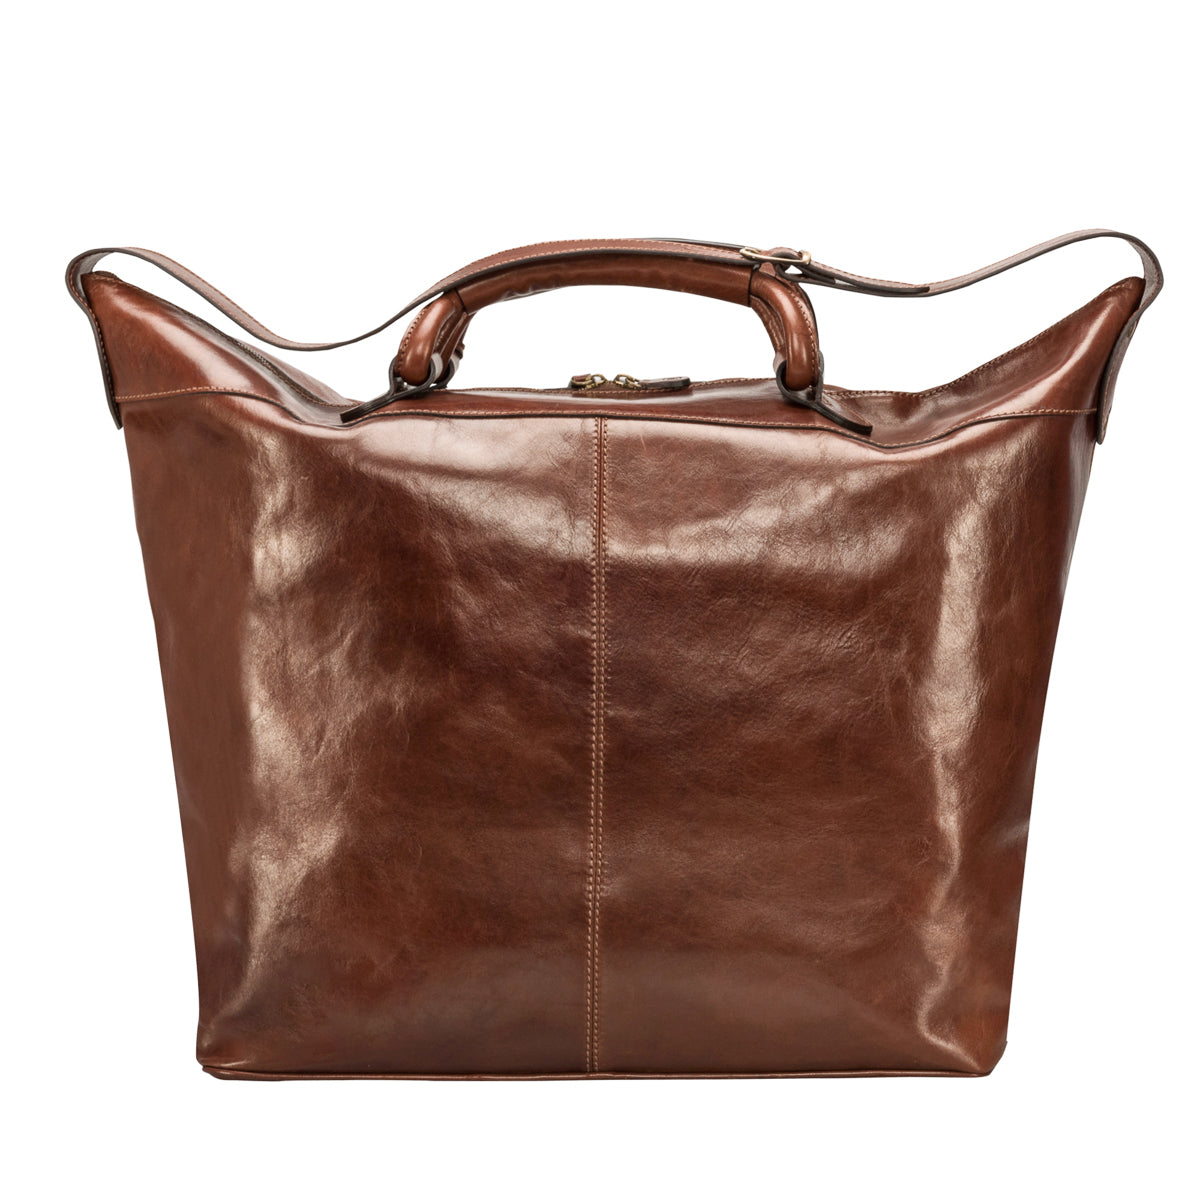 Image 4 of the 'Fabrizio' Chestnut Veg-Tanned Leather Holdall